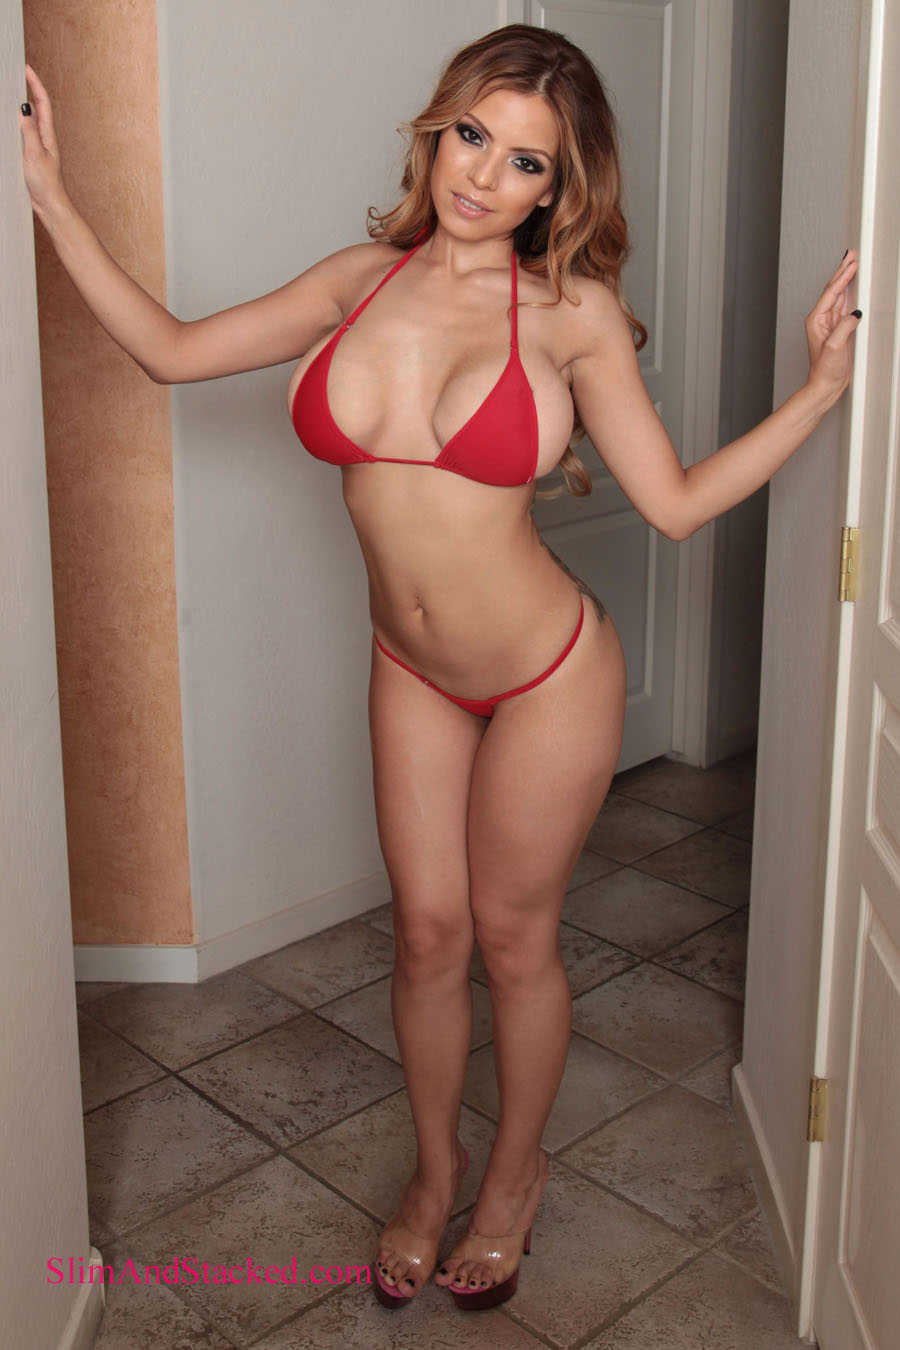 Actress and feature dancer Yurizan Beltran is smoking hot in a tiny red bikini.  And she gets even hotter when her bikini top comes off.  Get the entire set in ultra high quality, 3000 pixel resolution by contacting dezertimagez@gmail.com for pricing.